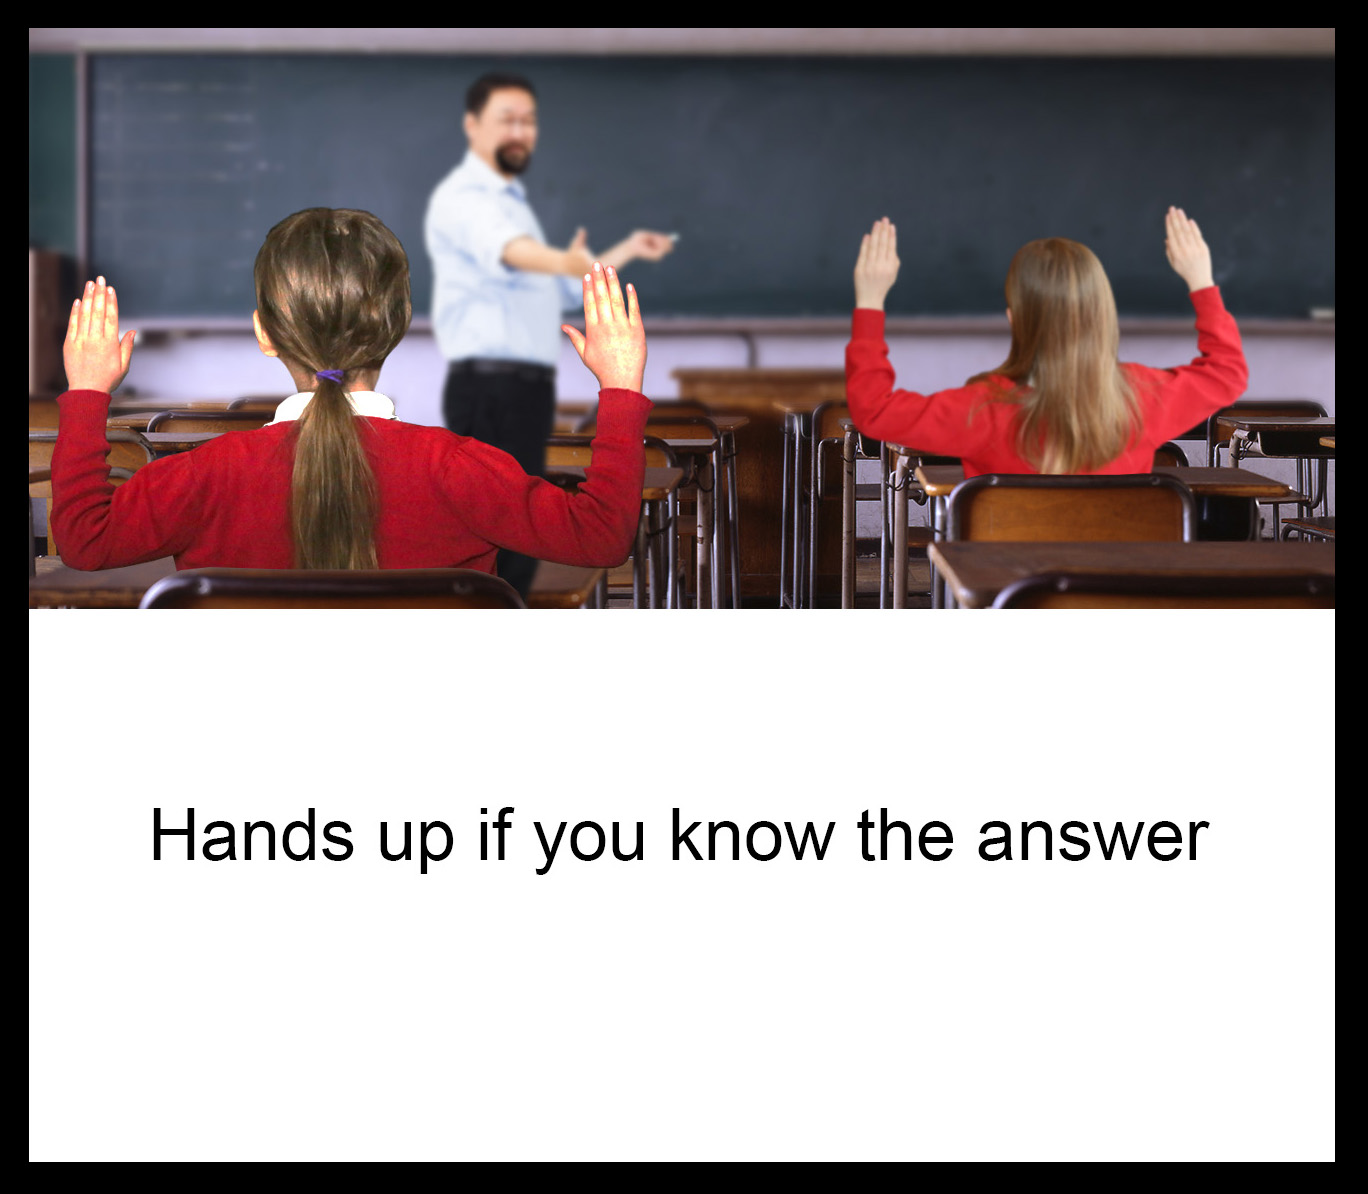 Hands up if you know the answer; Sam Rutherford